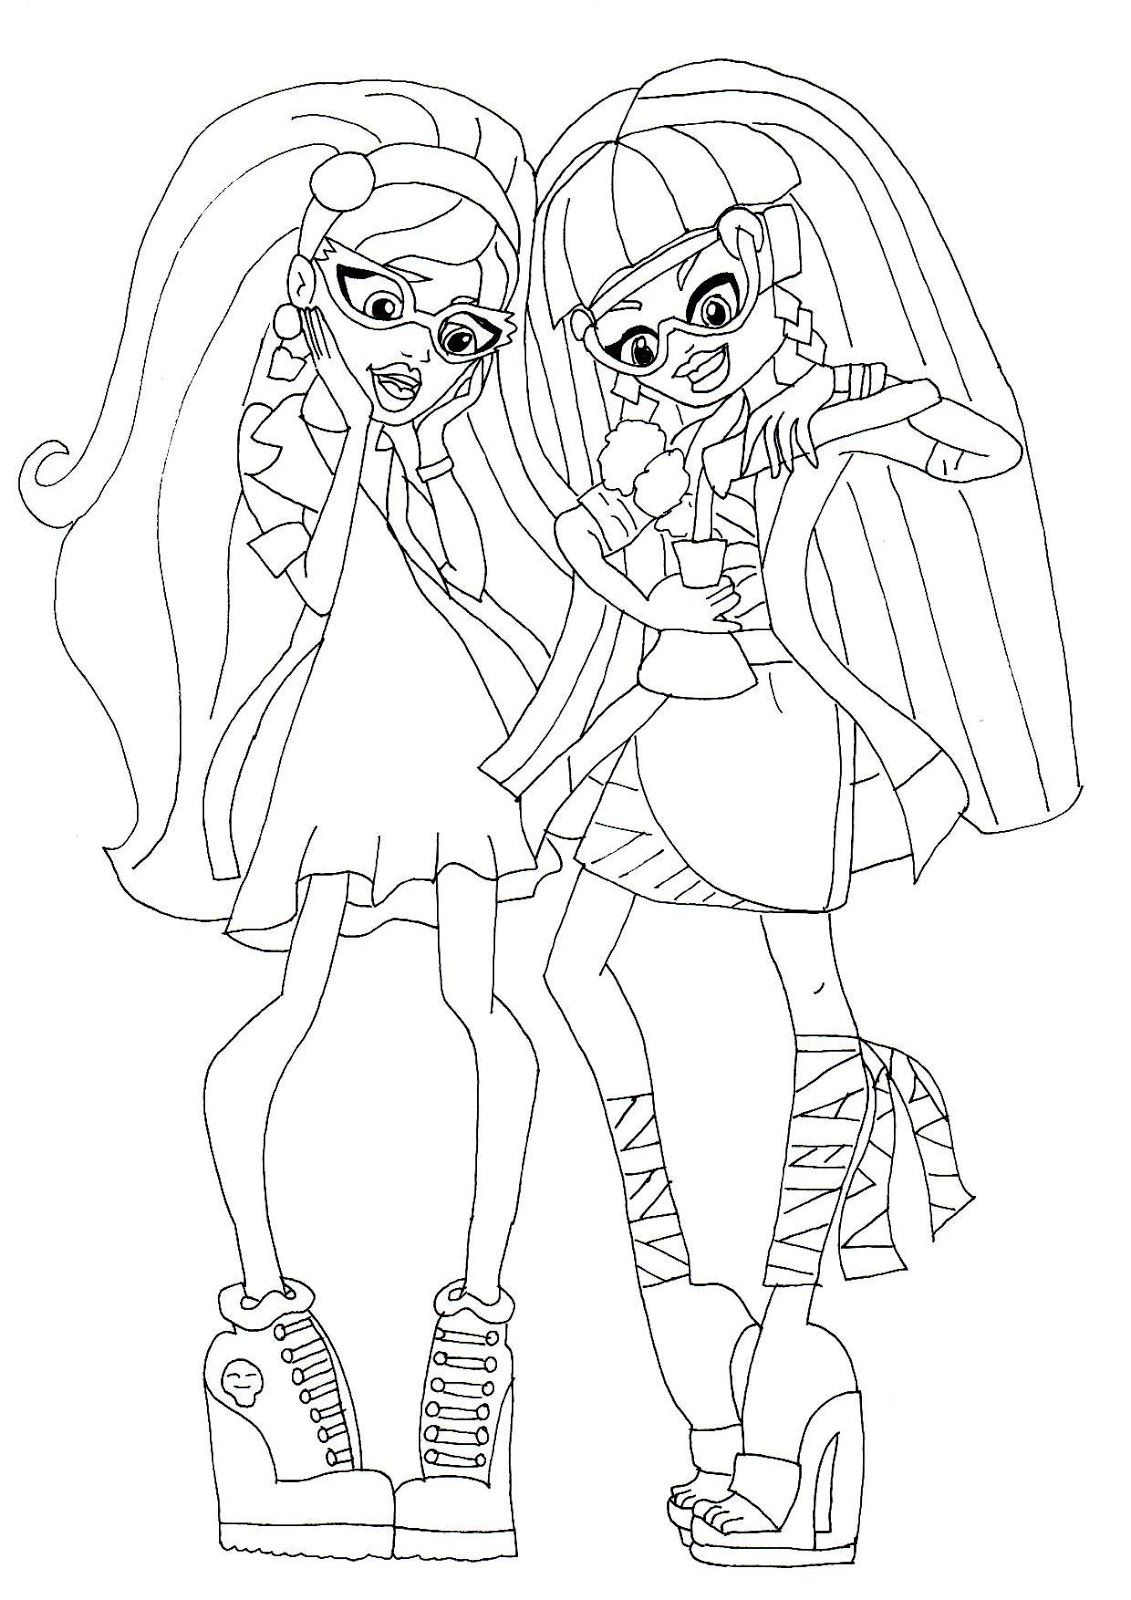 Cleo & Ghoulia Mad Science Coloring Sheet - 05-Sep-20131.jpg (1131 ...